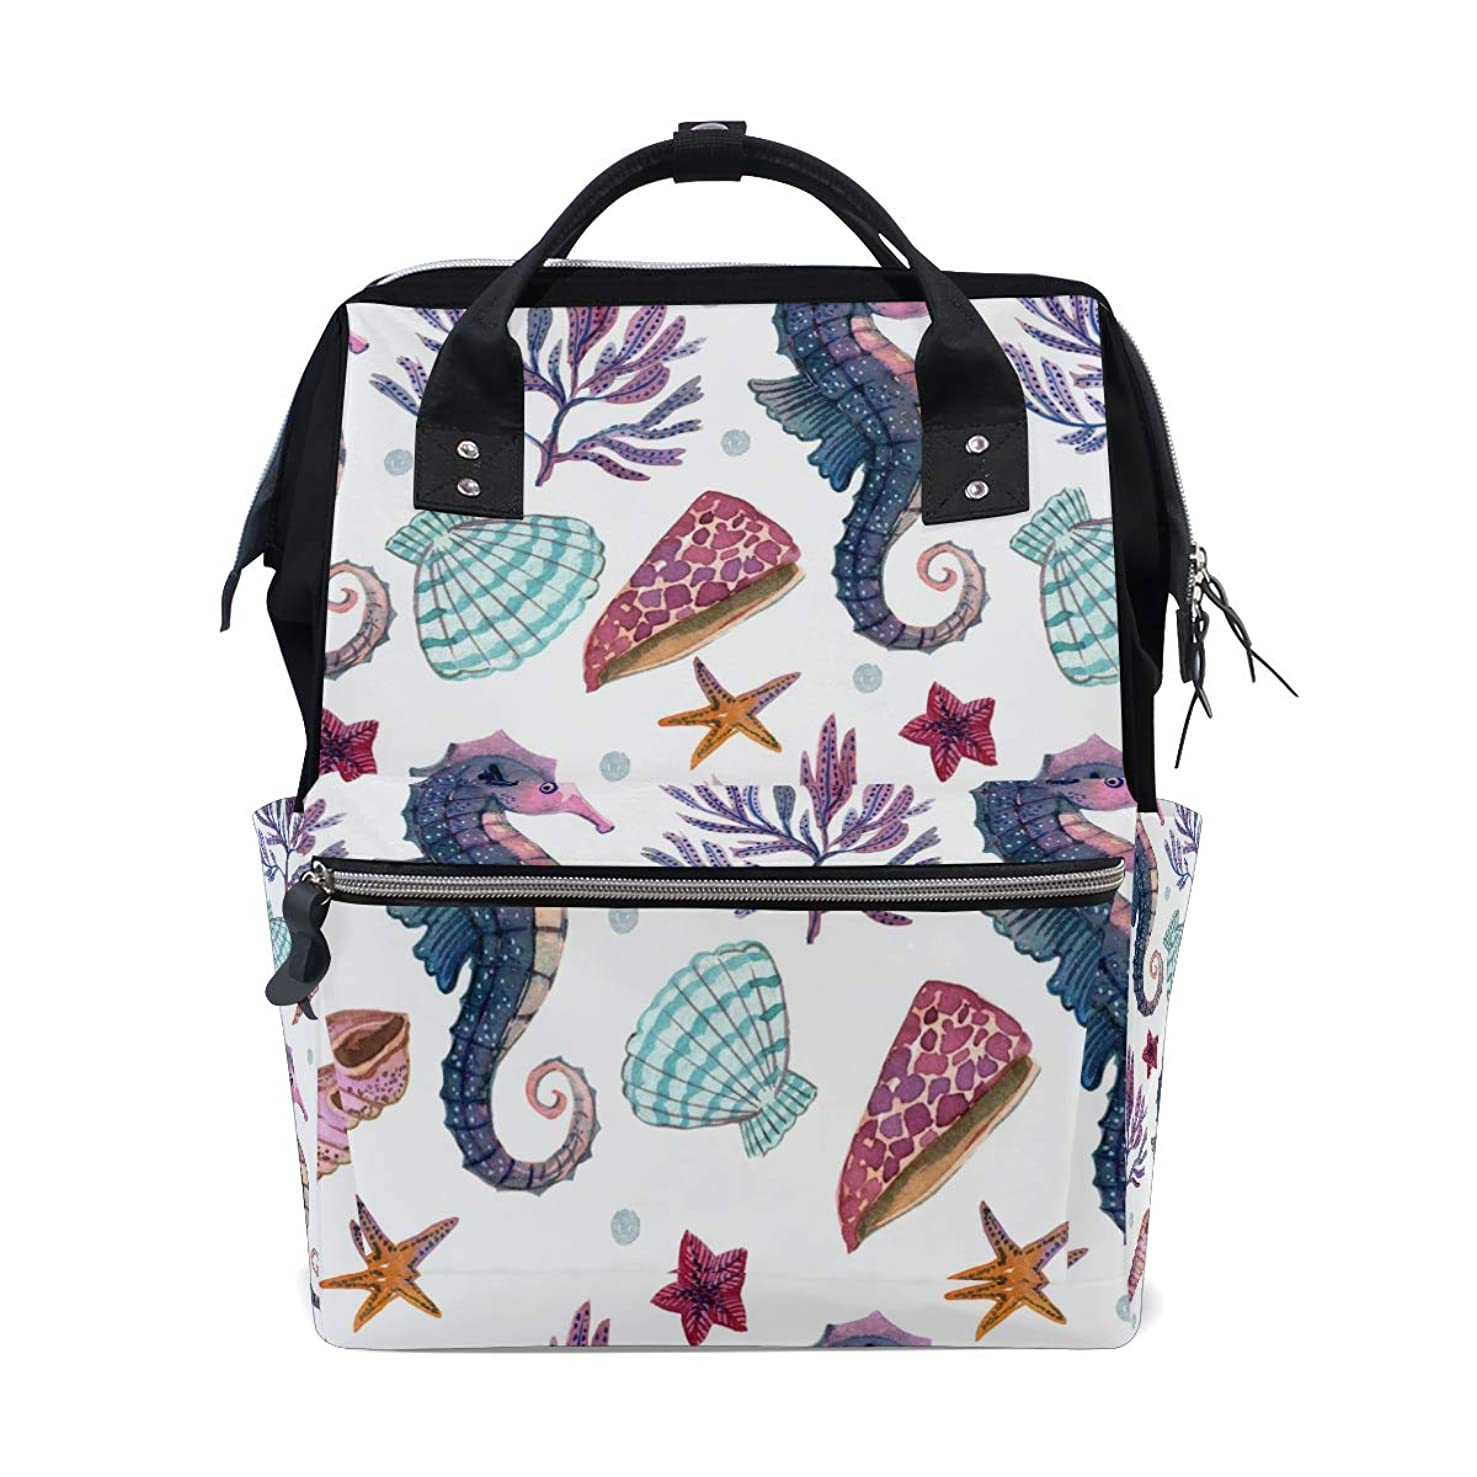 Seahorses Shell Conch Starfish School Backpack Large Capacity Mummy Bags Laptop Handbag Casual Travel Rucksack Satchel For Women Men Adult Teen Children